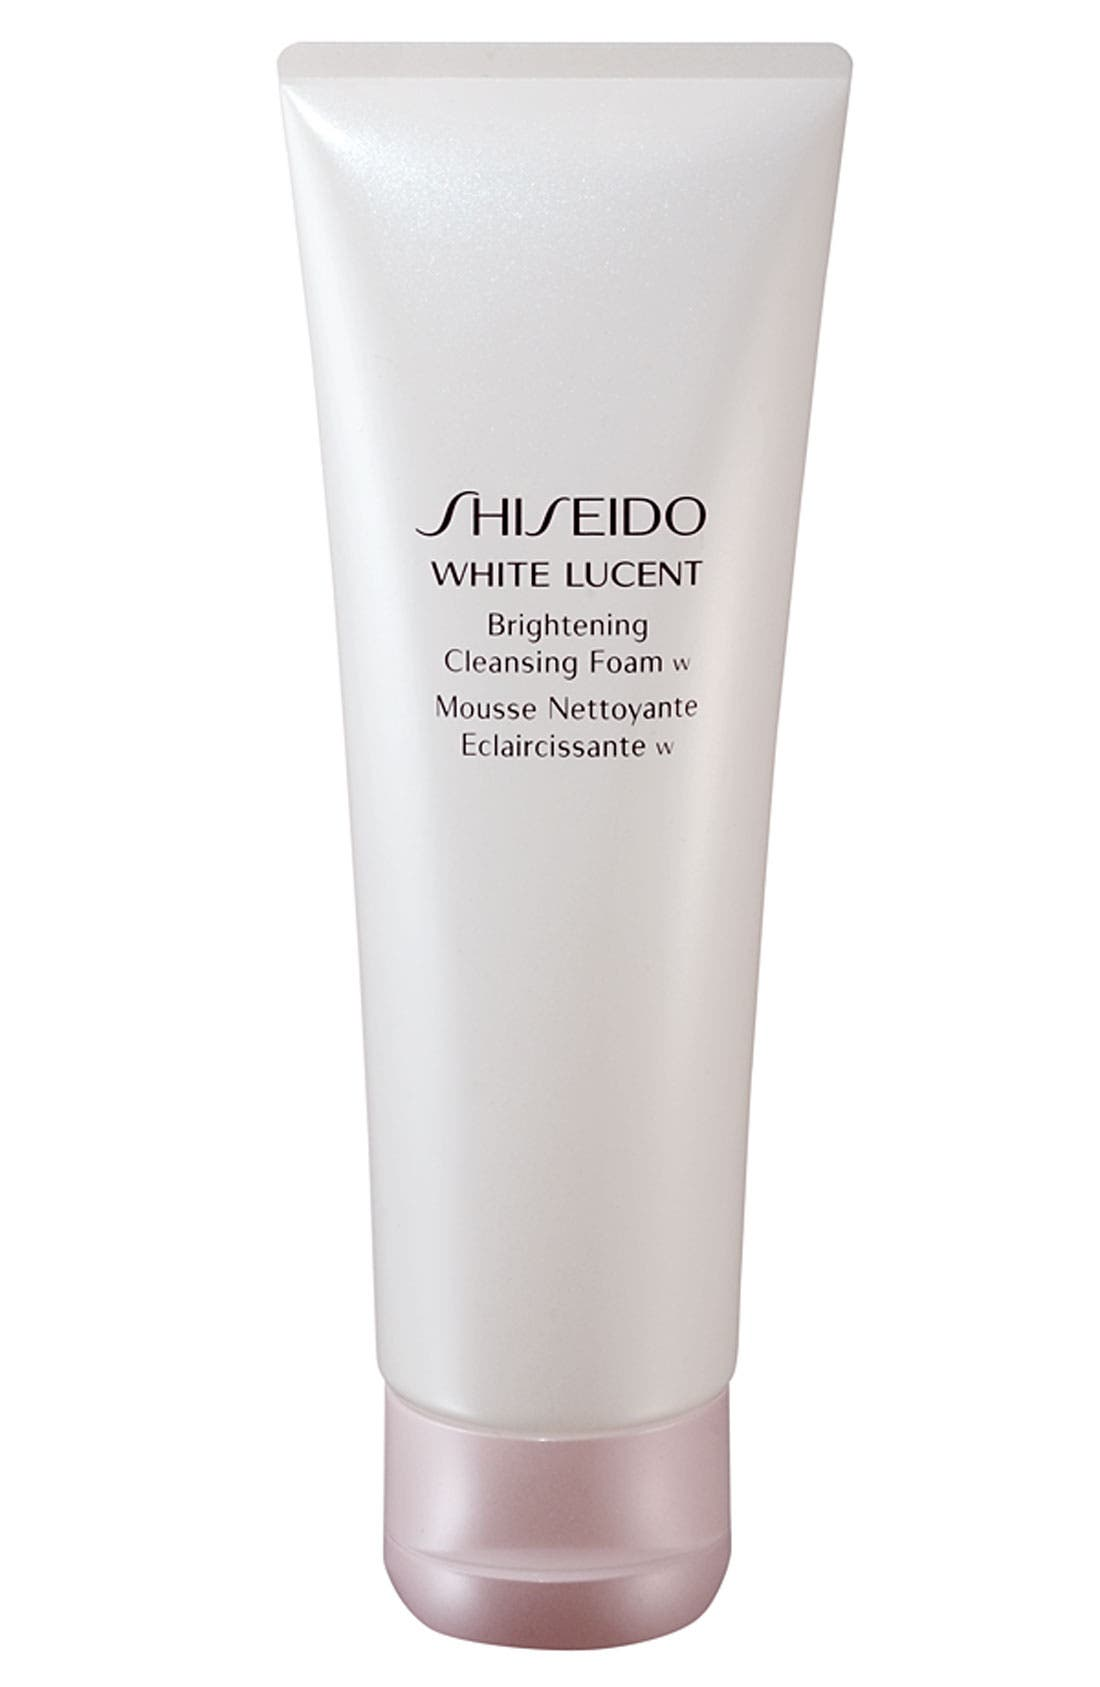 Shiseido 'White Lucent' Brightening Cleansing Foam